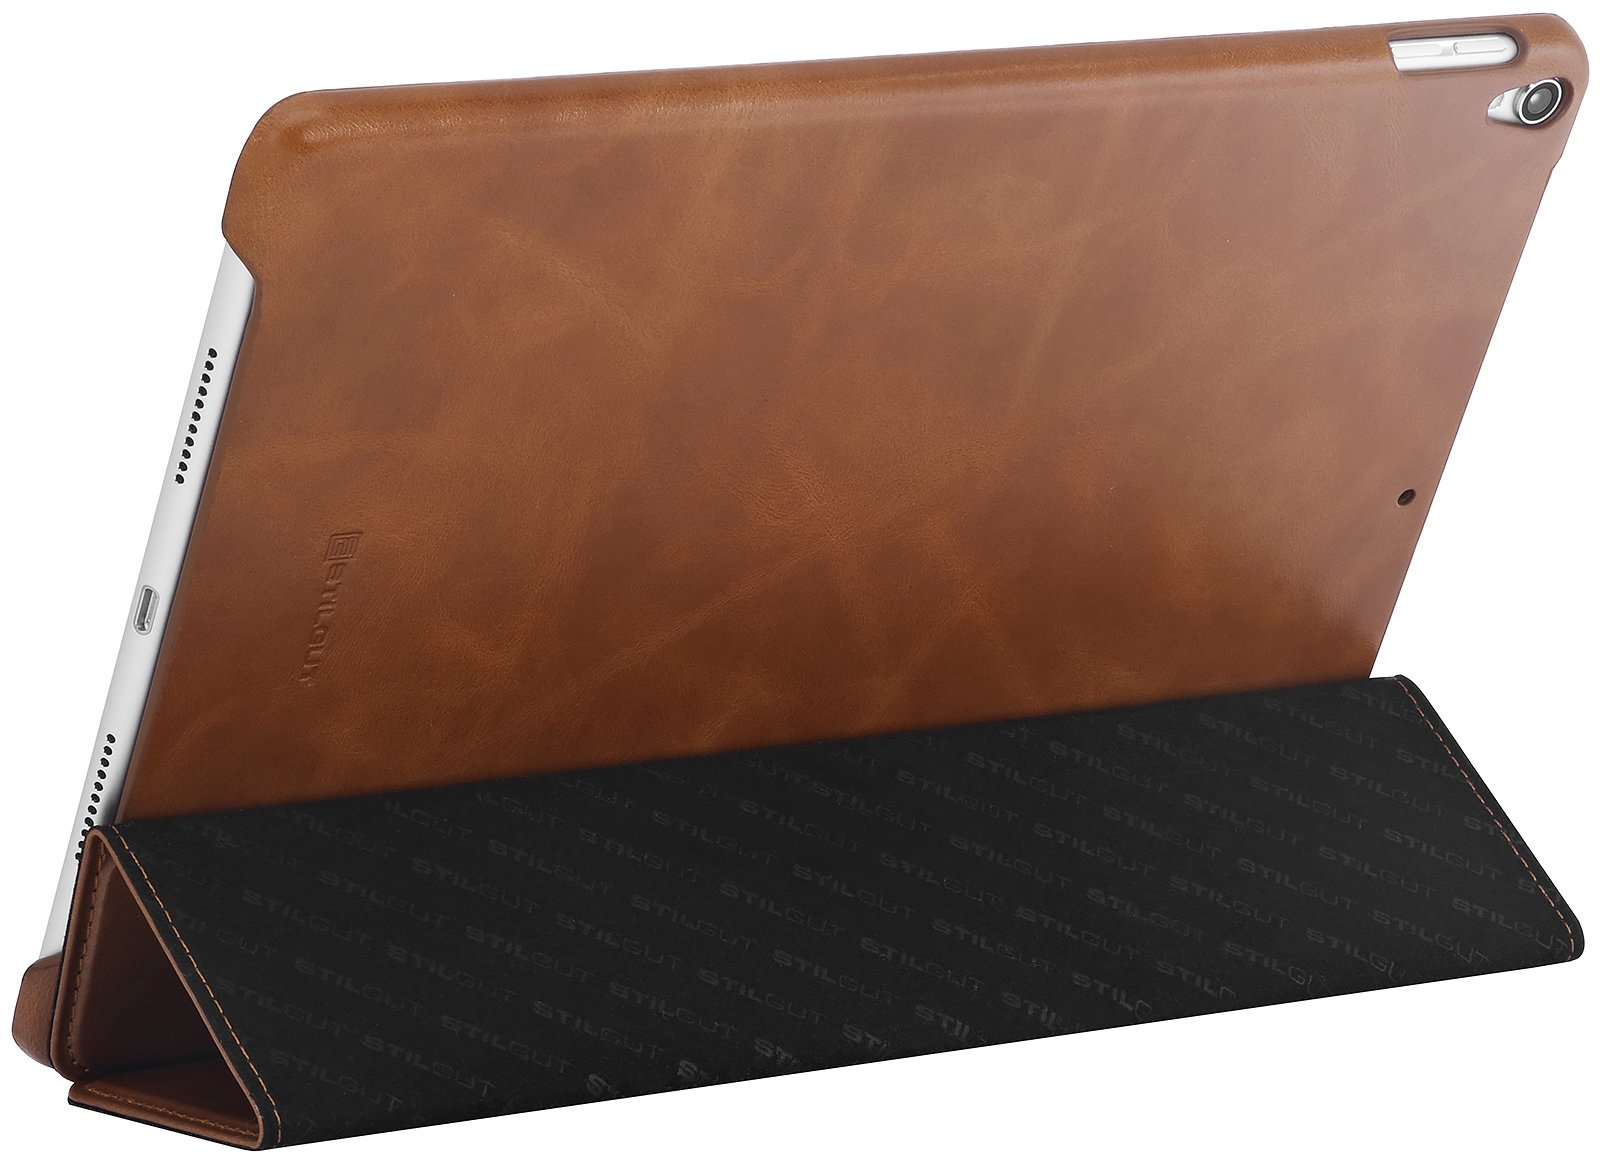 StilGut iPad 10.5 Case, Leather Flip Cover with Stand Function and Auto Sleep Wake Feature for Apple iPad Pro 10.5 Inch, Cognac Brown